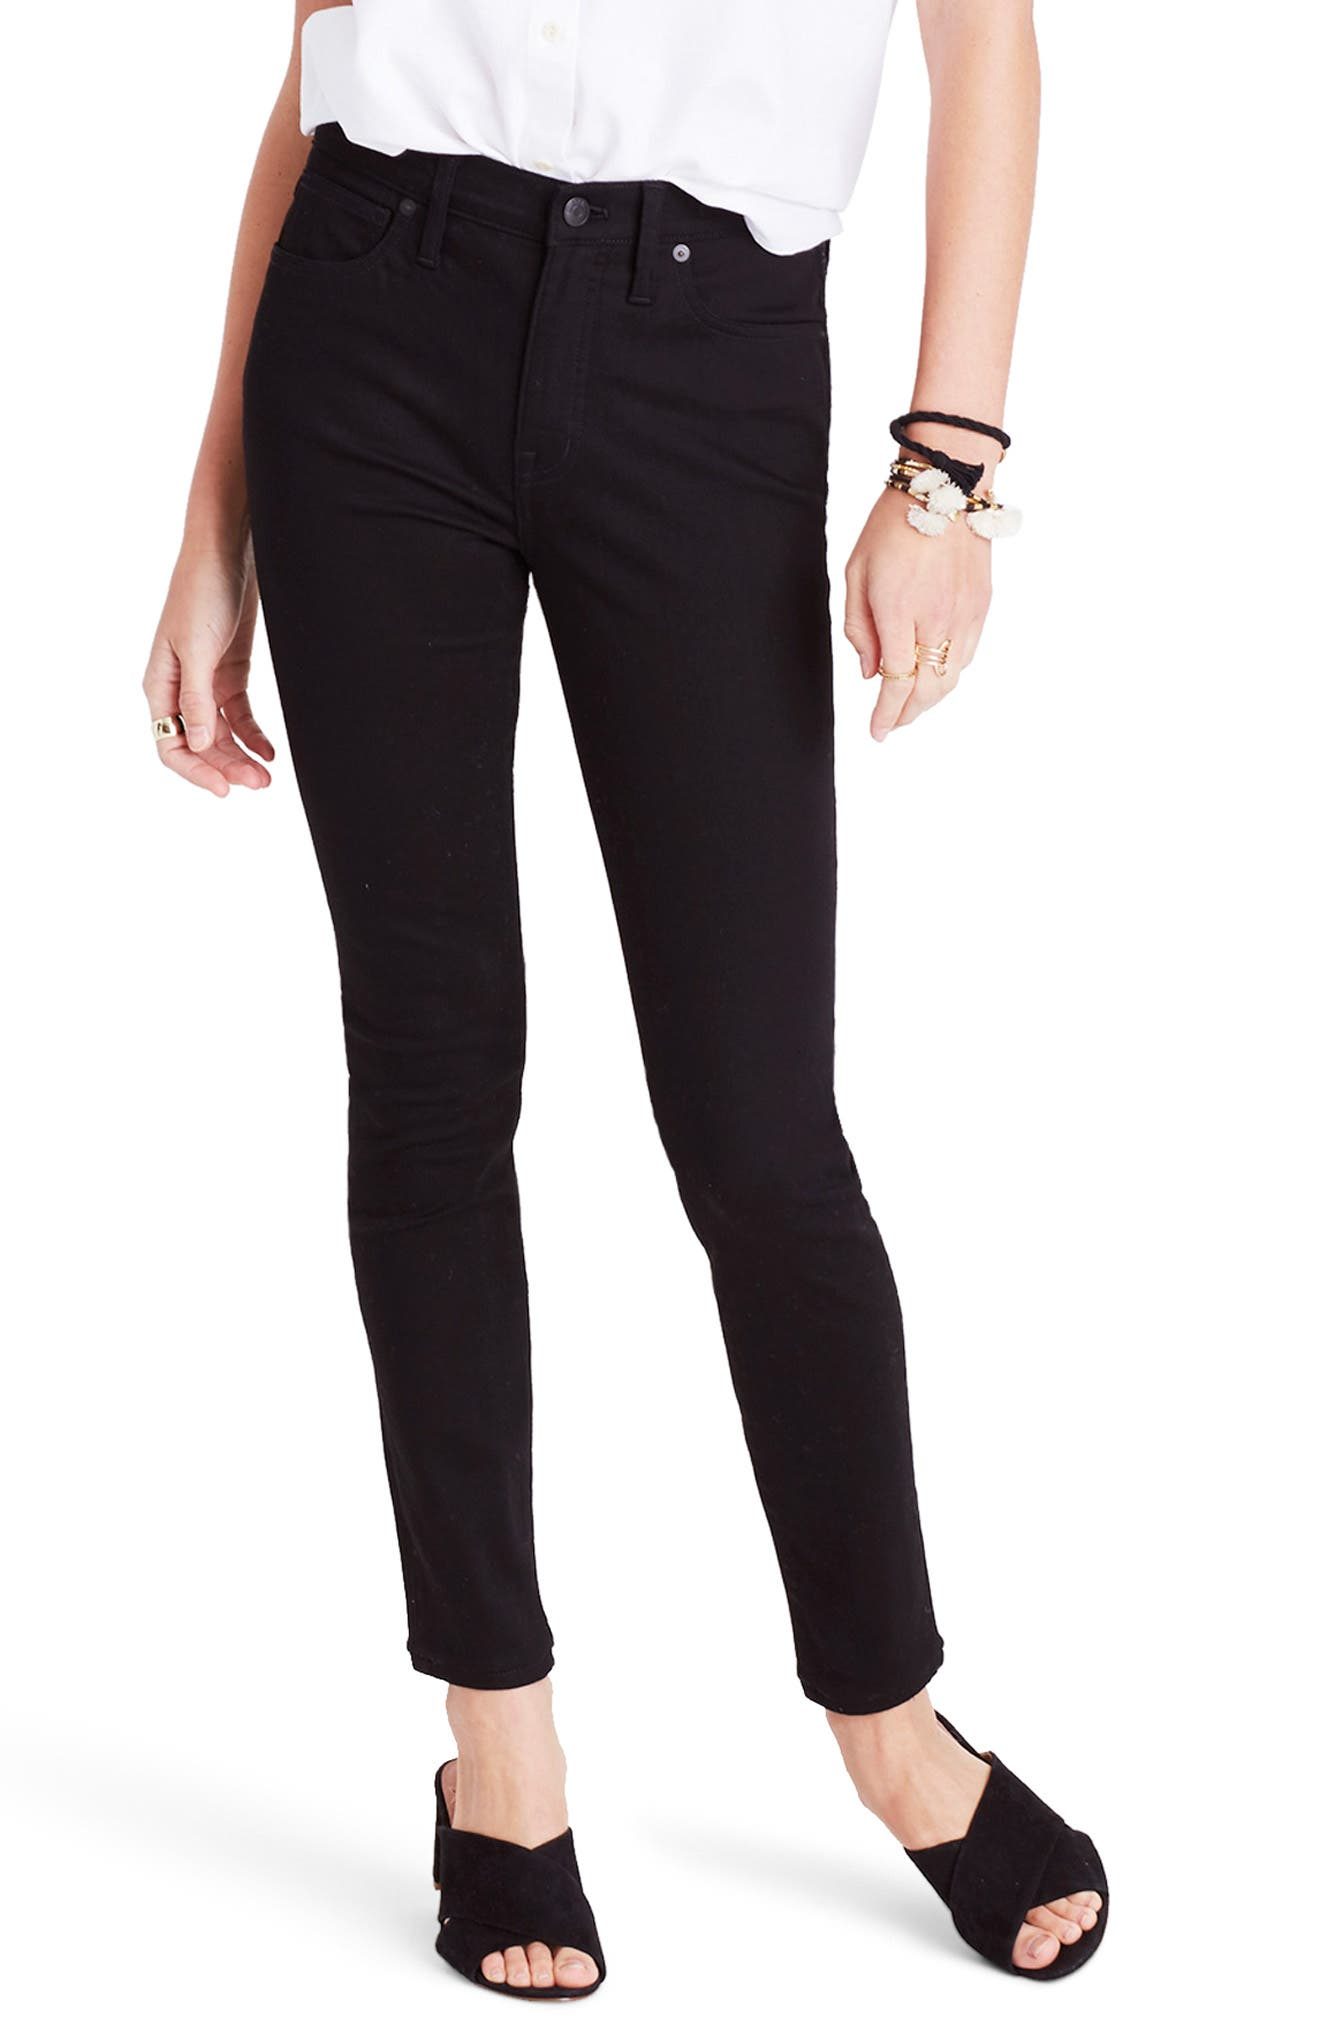 9-Inch High Waist Skinny Jeans,                             Main thumbnail 1, color,                             BLACK FROST